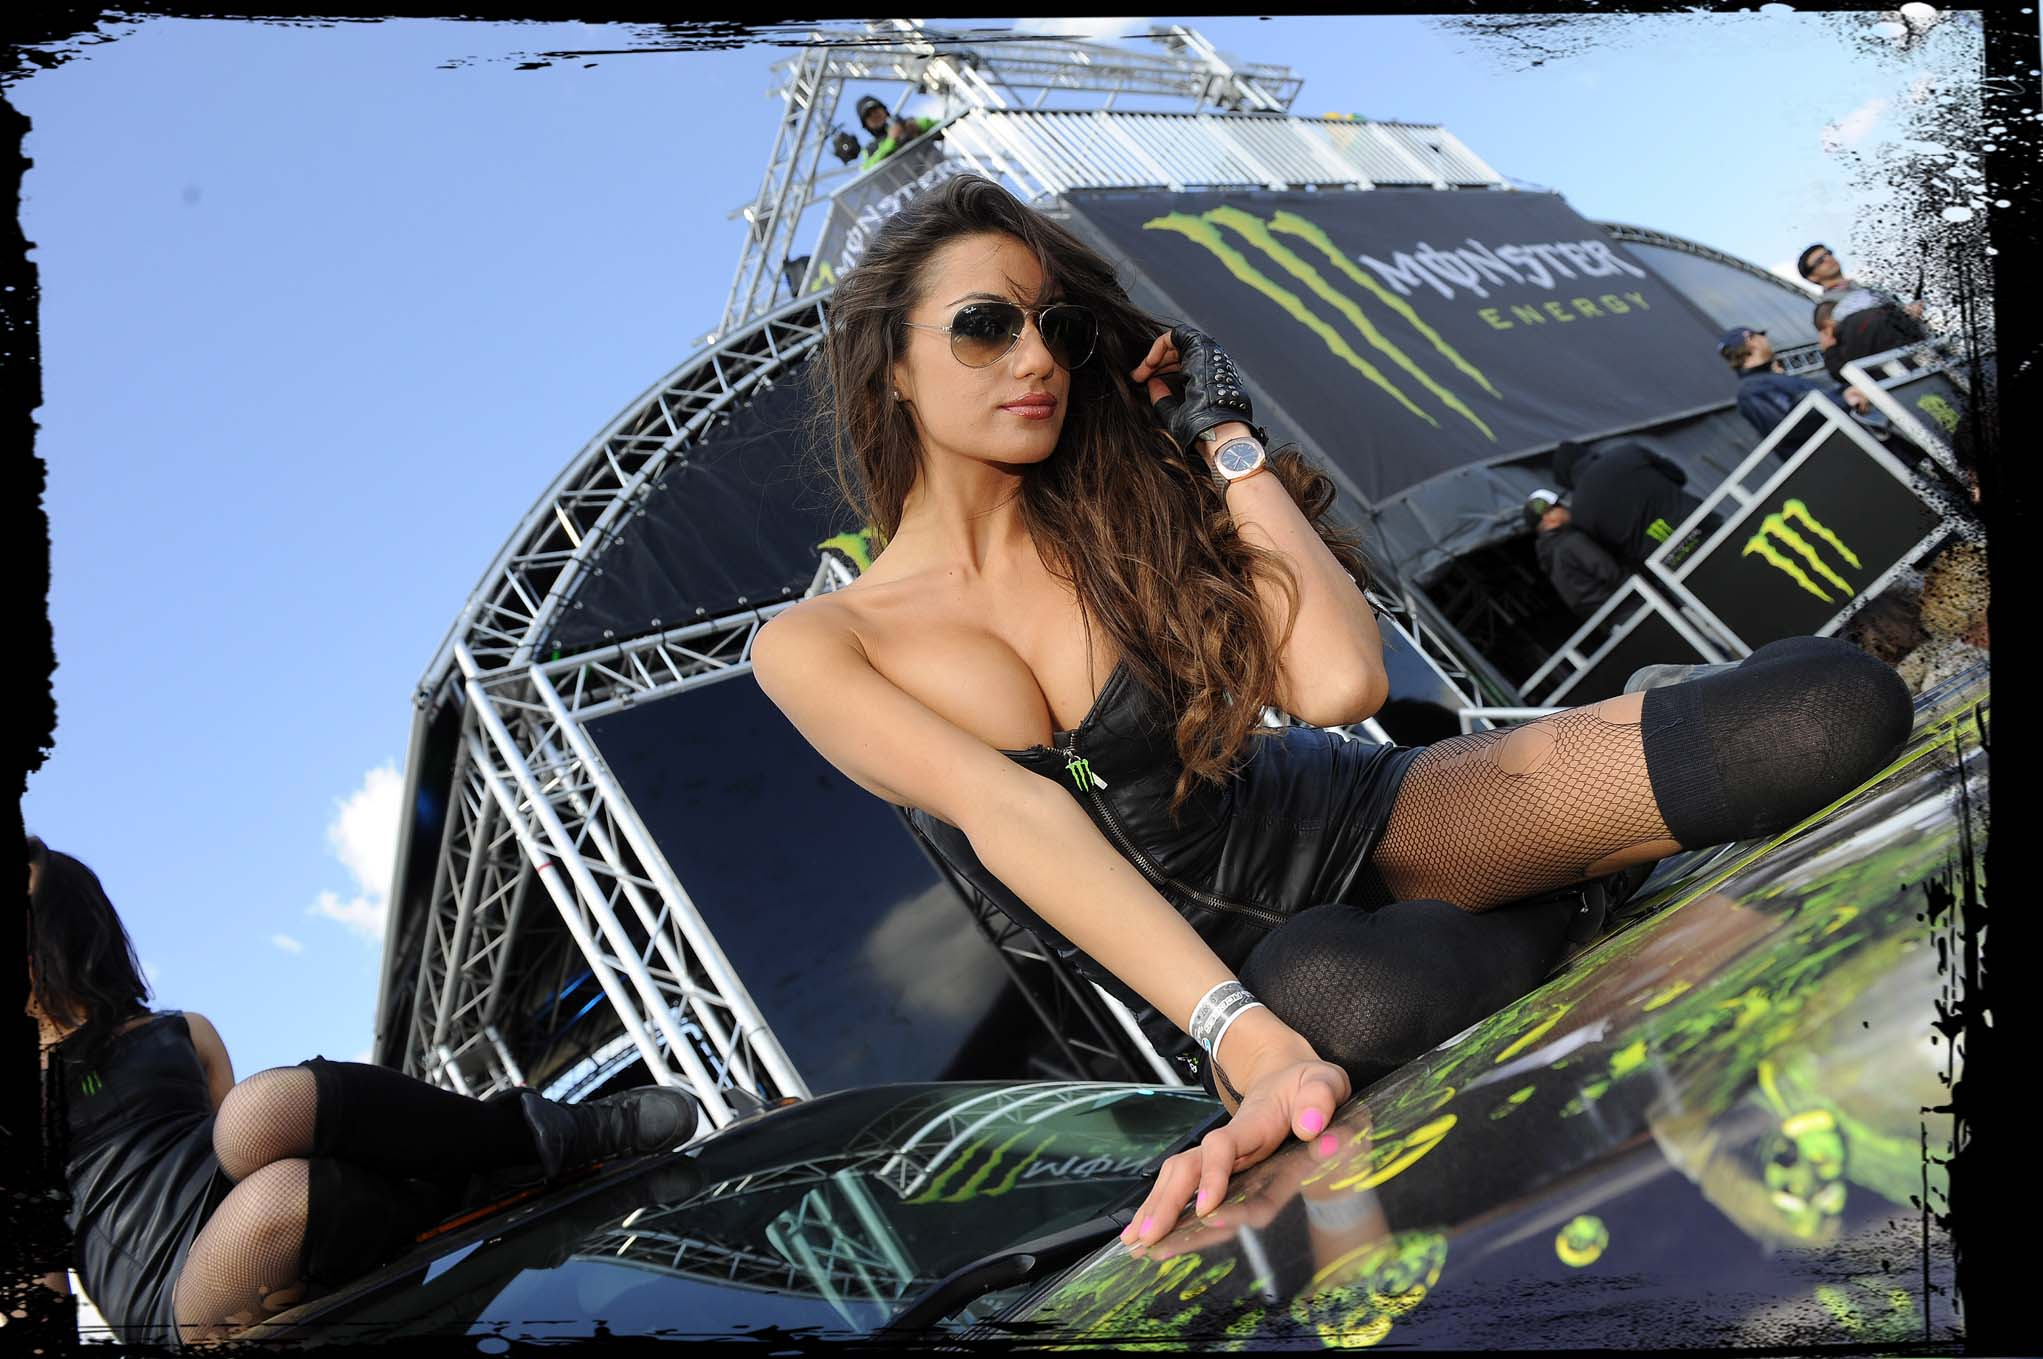 Monster energy girls nude vid sexy comic